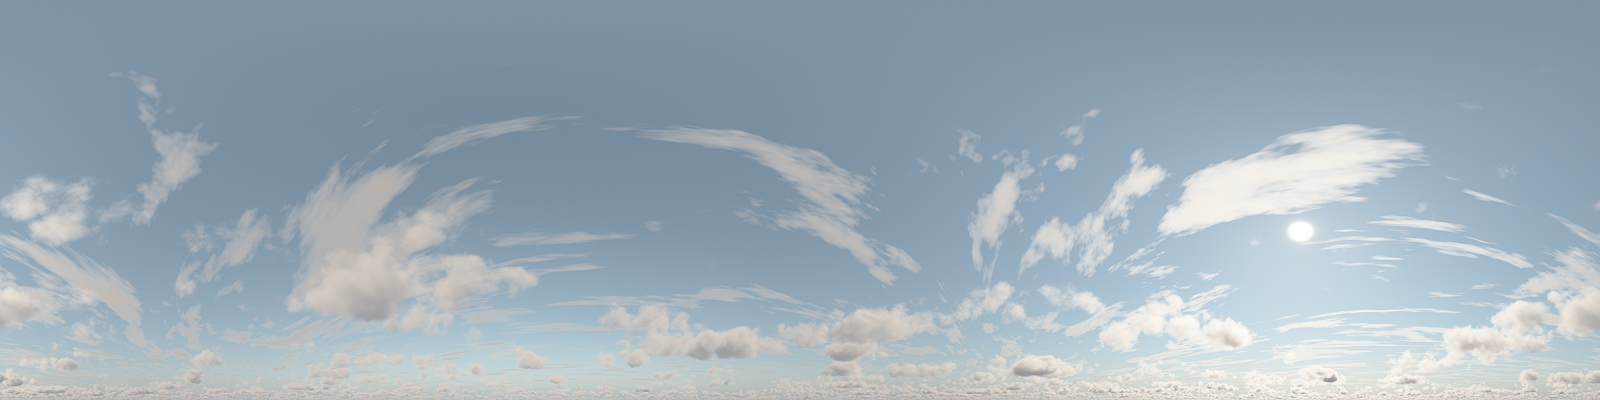 FREE Daylight Sky - Cumulus & AltoStratus Clouds - HDR | Redshift